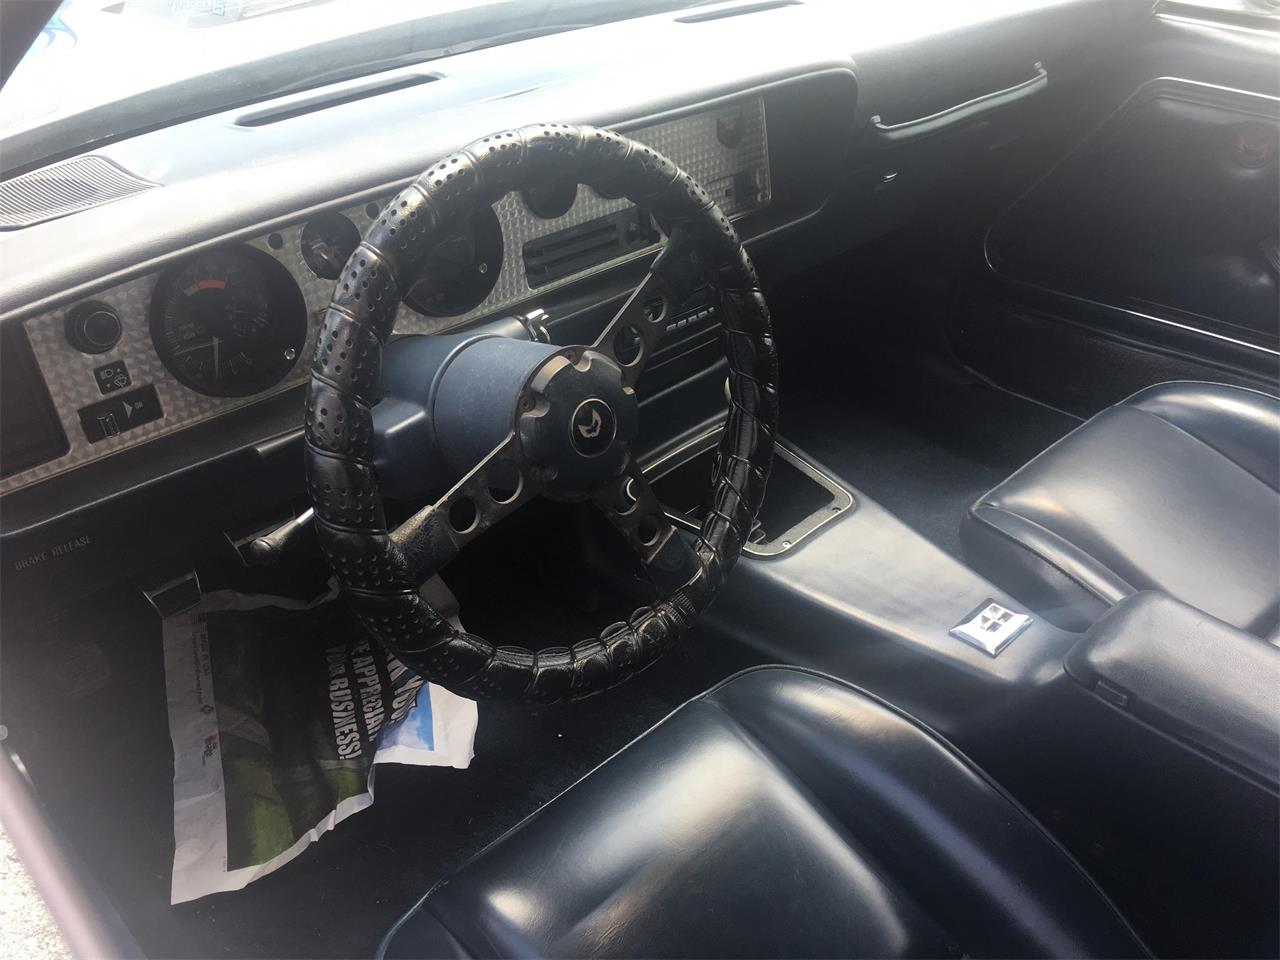 1981 Pontiac Firebird Trans Am for sale in Ponte Verda Beach, FL – photo 17